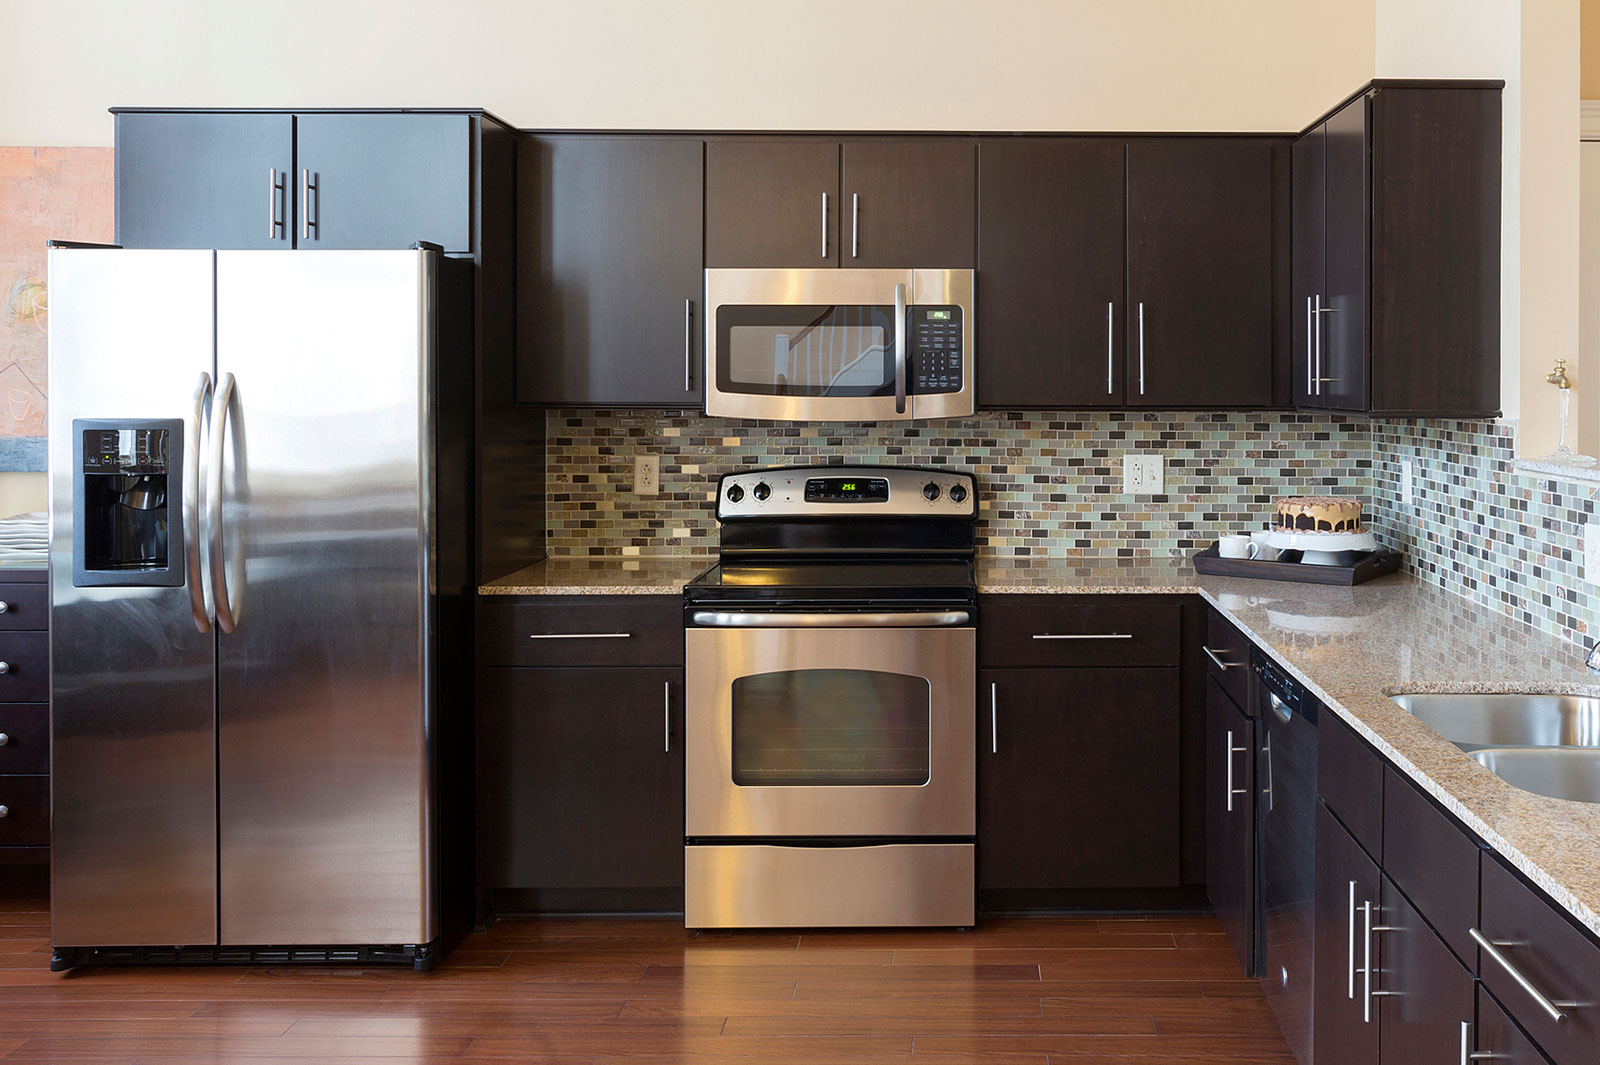 kenmore self cleaning oven lovetoknow